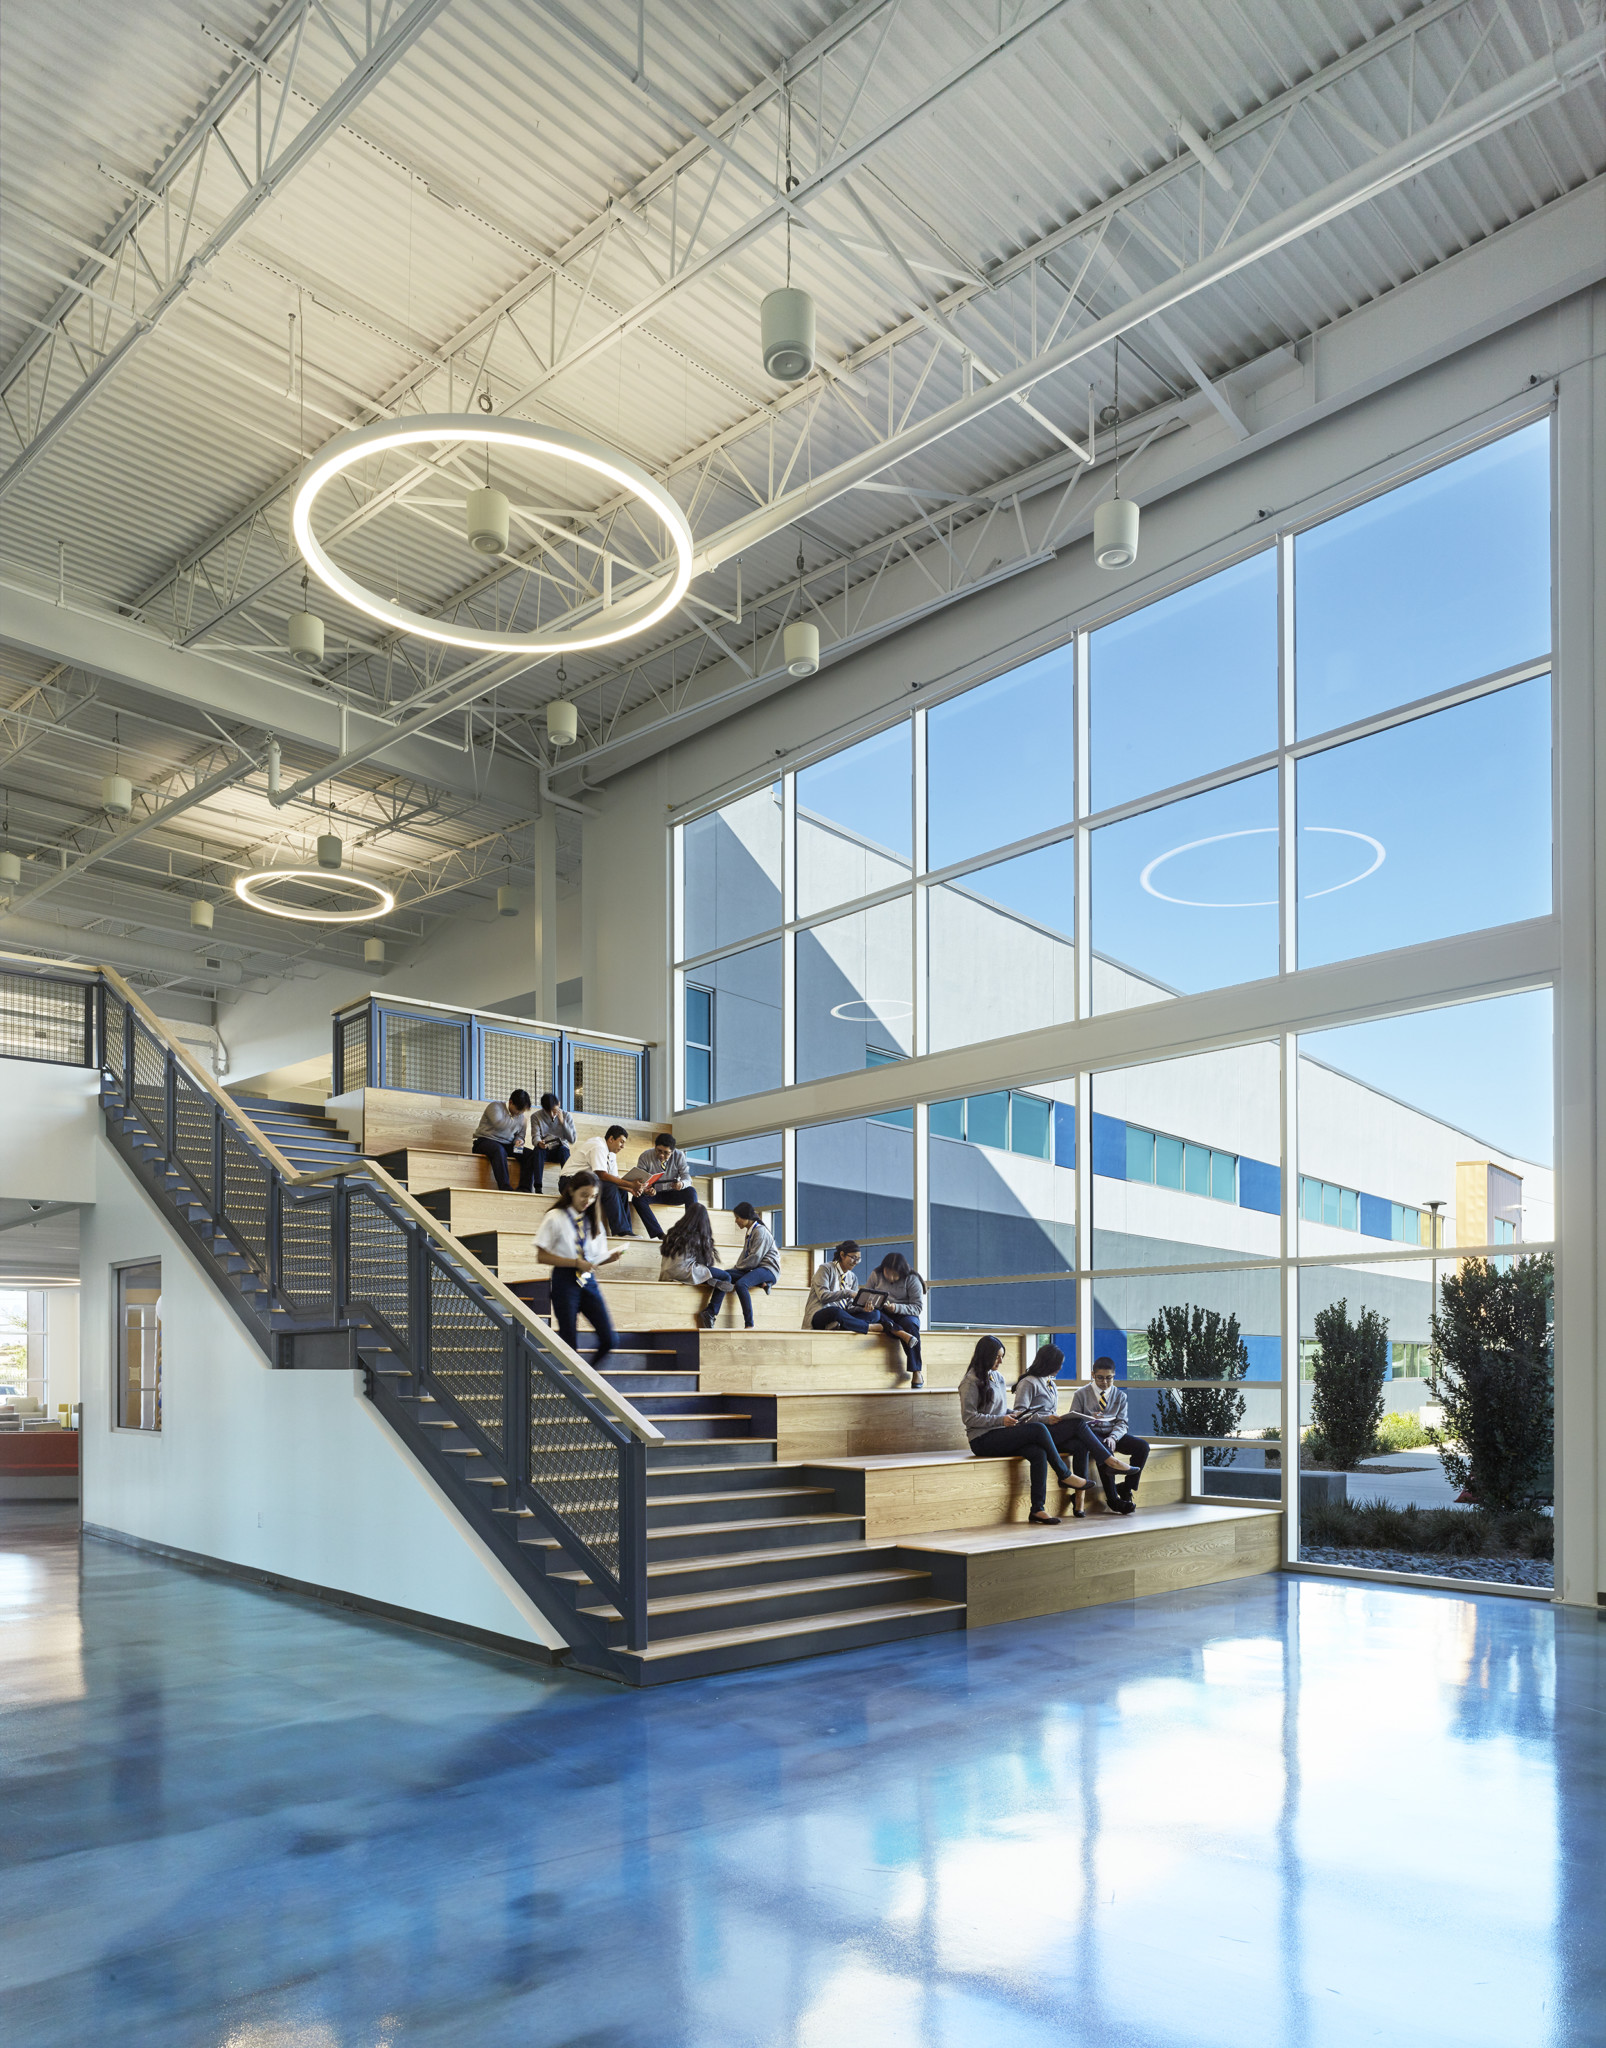 The main stairs at Cristo Rey St. Viator College Preparatory Academy, education design by LGA Architecture.